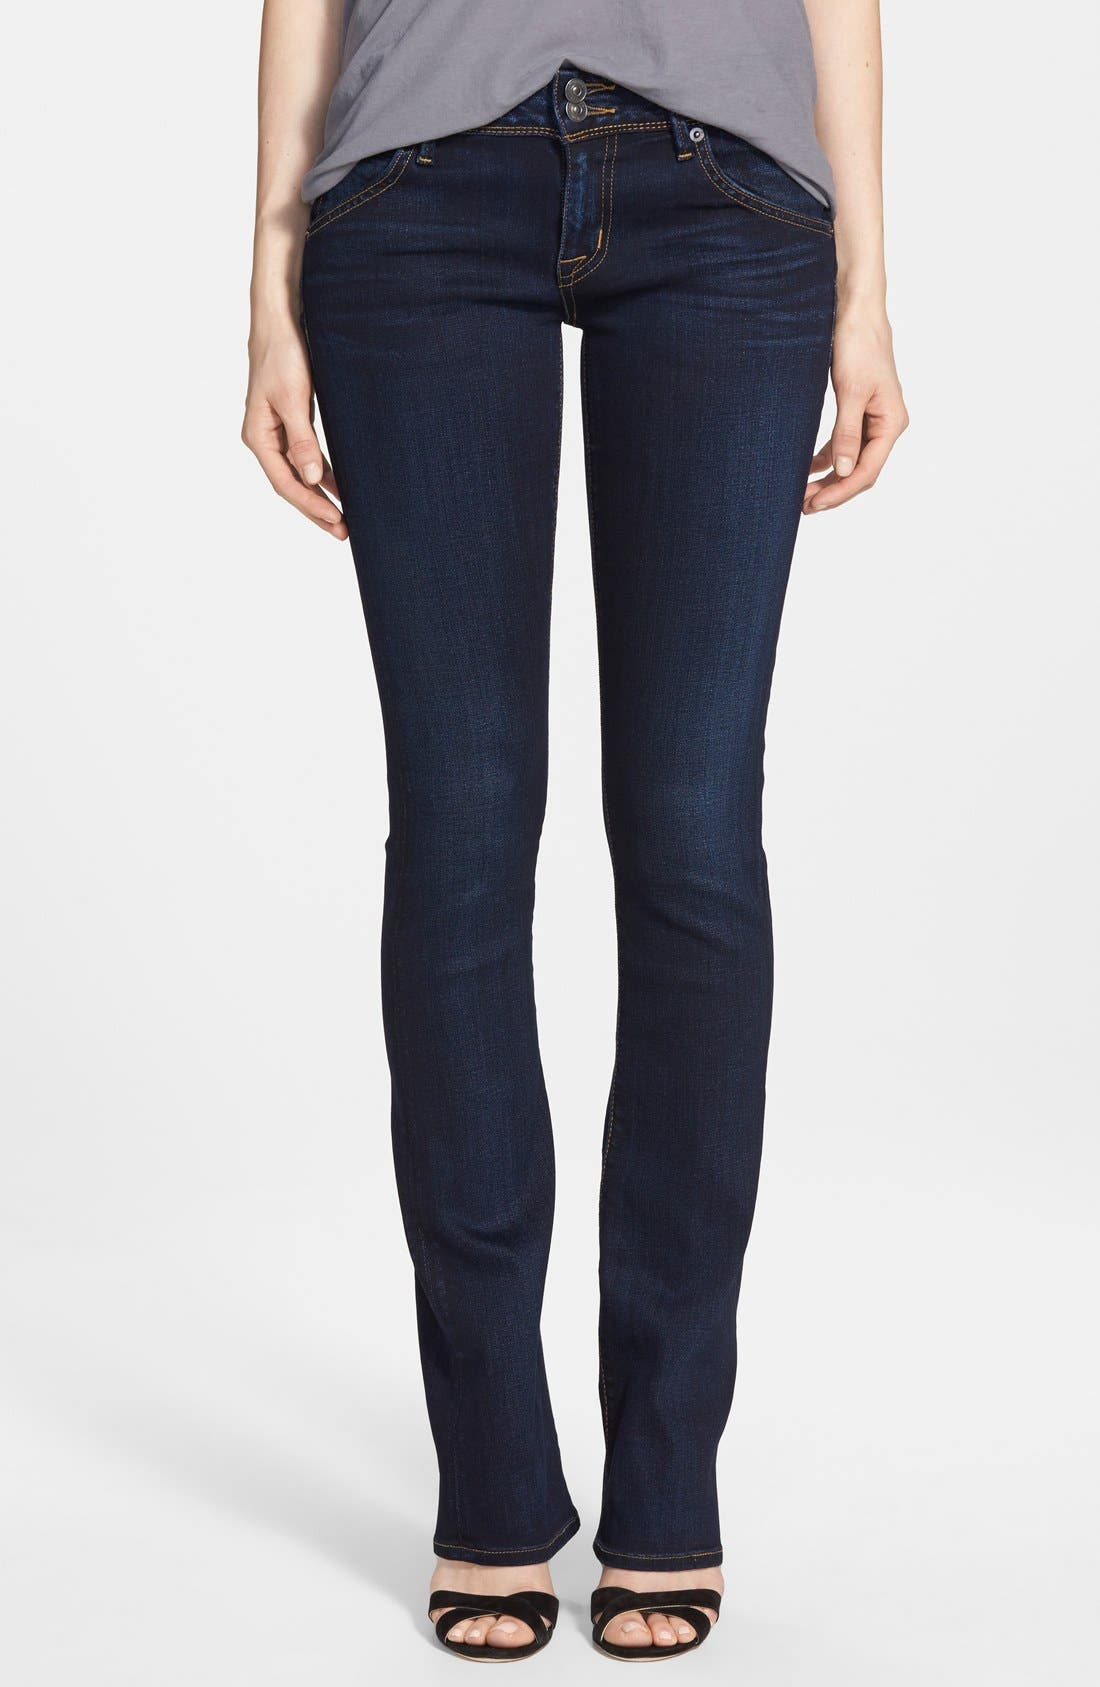 Alternate Image 1 Selected - Hudson Jeans 'Elysian - Beth' Baby Bootcut Jeans (Oracle)